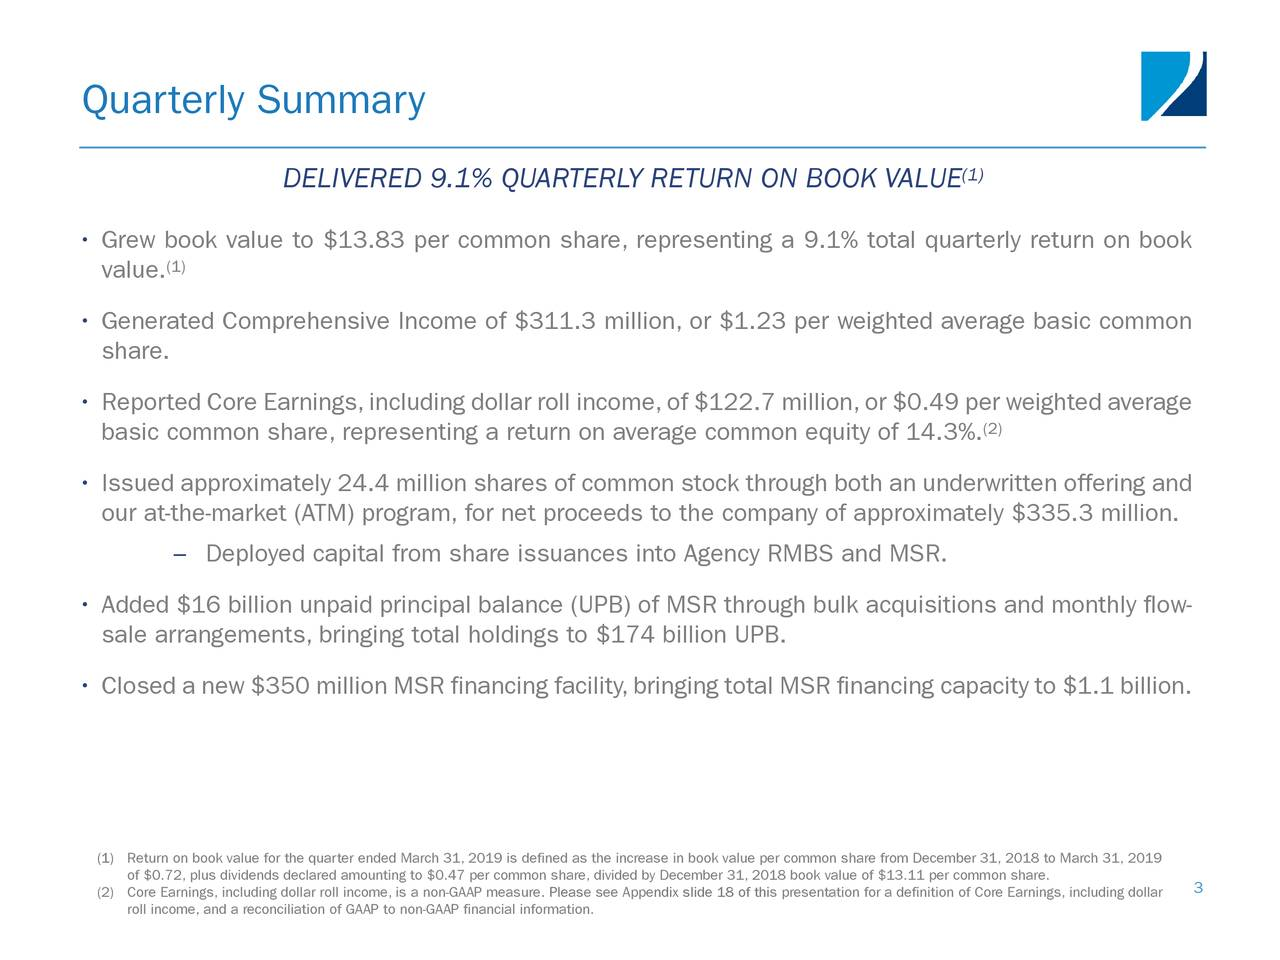 DELIVERED 9.1% QUARTERLY RETURN ON BOOK VALUE (1) • Grew book value to $13.83 per common share, representing a 9.1% total quarterly return on book value. (1) • Generated Comprehensive Income of $311.3 million, or $1.23 per weighted average basic common share. • Reported Core Earnings,including dollar roll income,of $122.7 million,or $0.49 per weighted average (2) basic common share, representing a return on average common equity of 14.3%. • Issued approximately 24.4 million shares of common stock through both an underwritten offering and our at-the-market (ATM) program, for net proceeds to the company of approximately $335.3 million. – Deployed capital from share issuances into Agency RMBS and MSR. • Added $16 billion unpaid principal balance (UPB) of MSR through bulk acquisitions and monthly flow- sale arrangements, bringing total holdings to $174 billion UPB. • Closed a new $350 million MSR financing facility,bringing total MSR financing capacity to $1.1 billion. (1)of $0.72, plus dividends declared amounting to $0.47 per common share, divided by December 31, 2018 book value of $13.11 per common share.8 to March 31, 2019 (2) Core Earnings, including dollar roll income, is a non-GAAP measure. Please see Appendix slide 18 of this presentation for a definition of Core Earnings, including dollar roll income, and a reconciliation of GAAP to non-GAAP financial information.